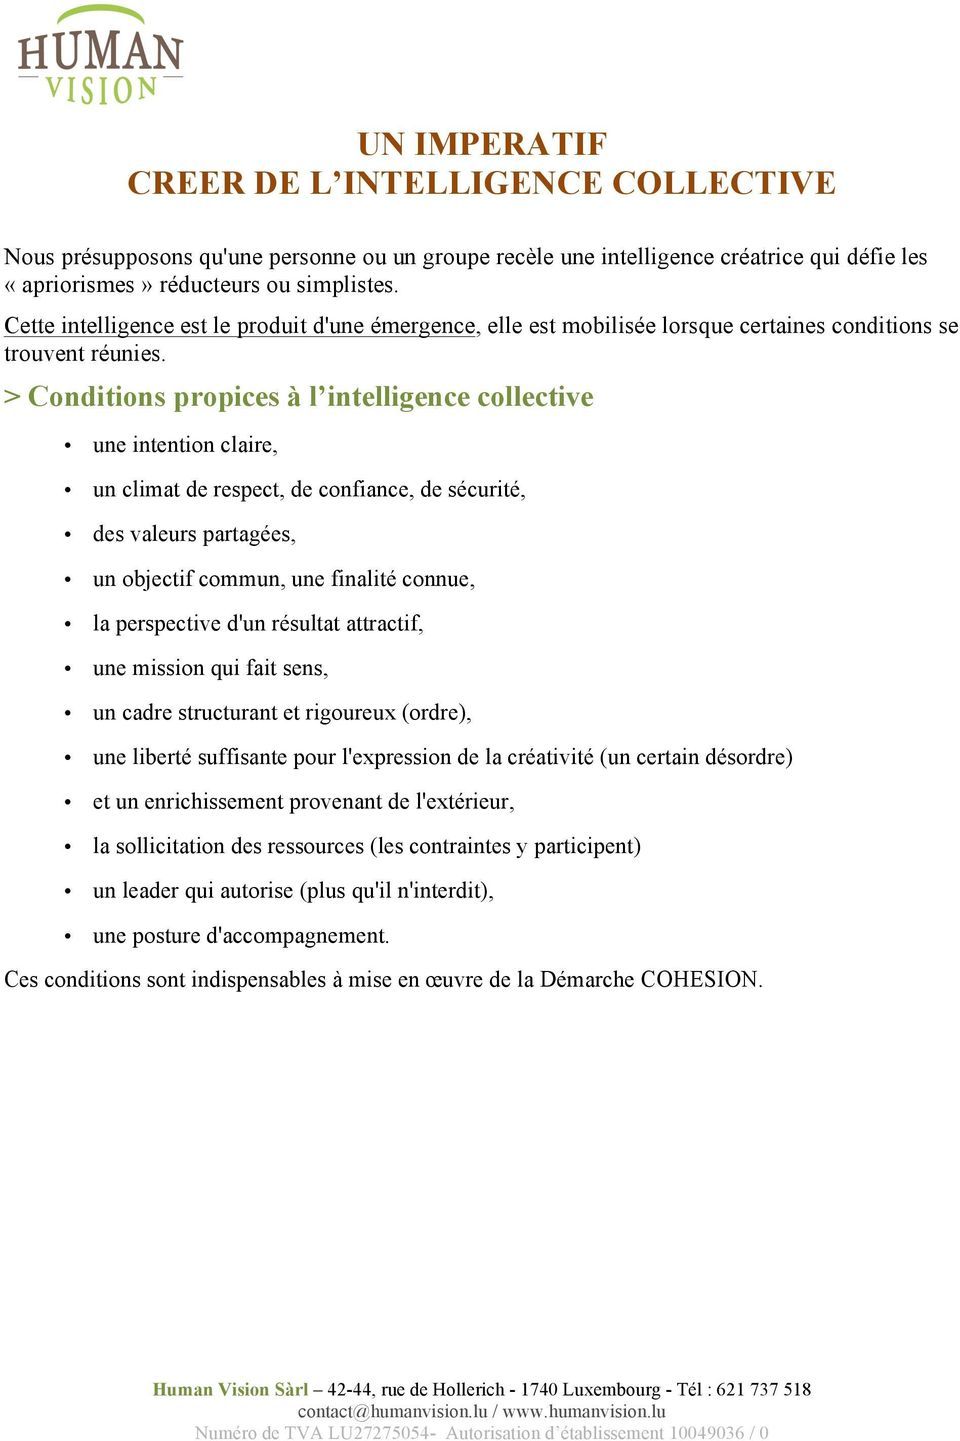 > Conditions propices à l intelligence collective une intention claire, un climat de respect, de confiance, de sécurité, des valeurs partagées, un objectif commun, une finalité connue, la perspective